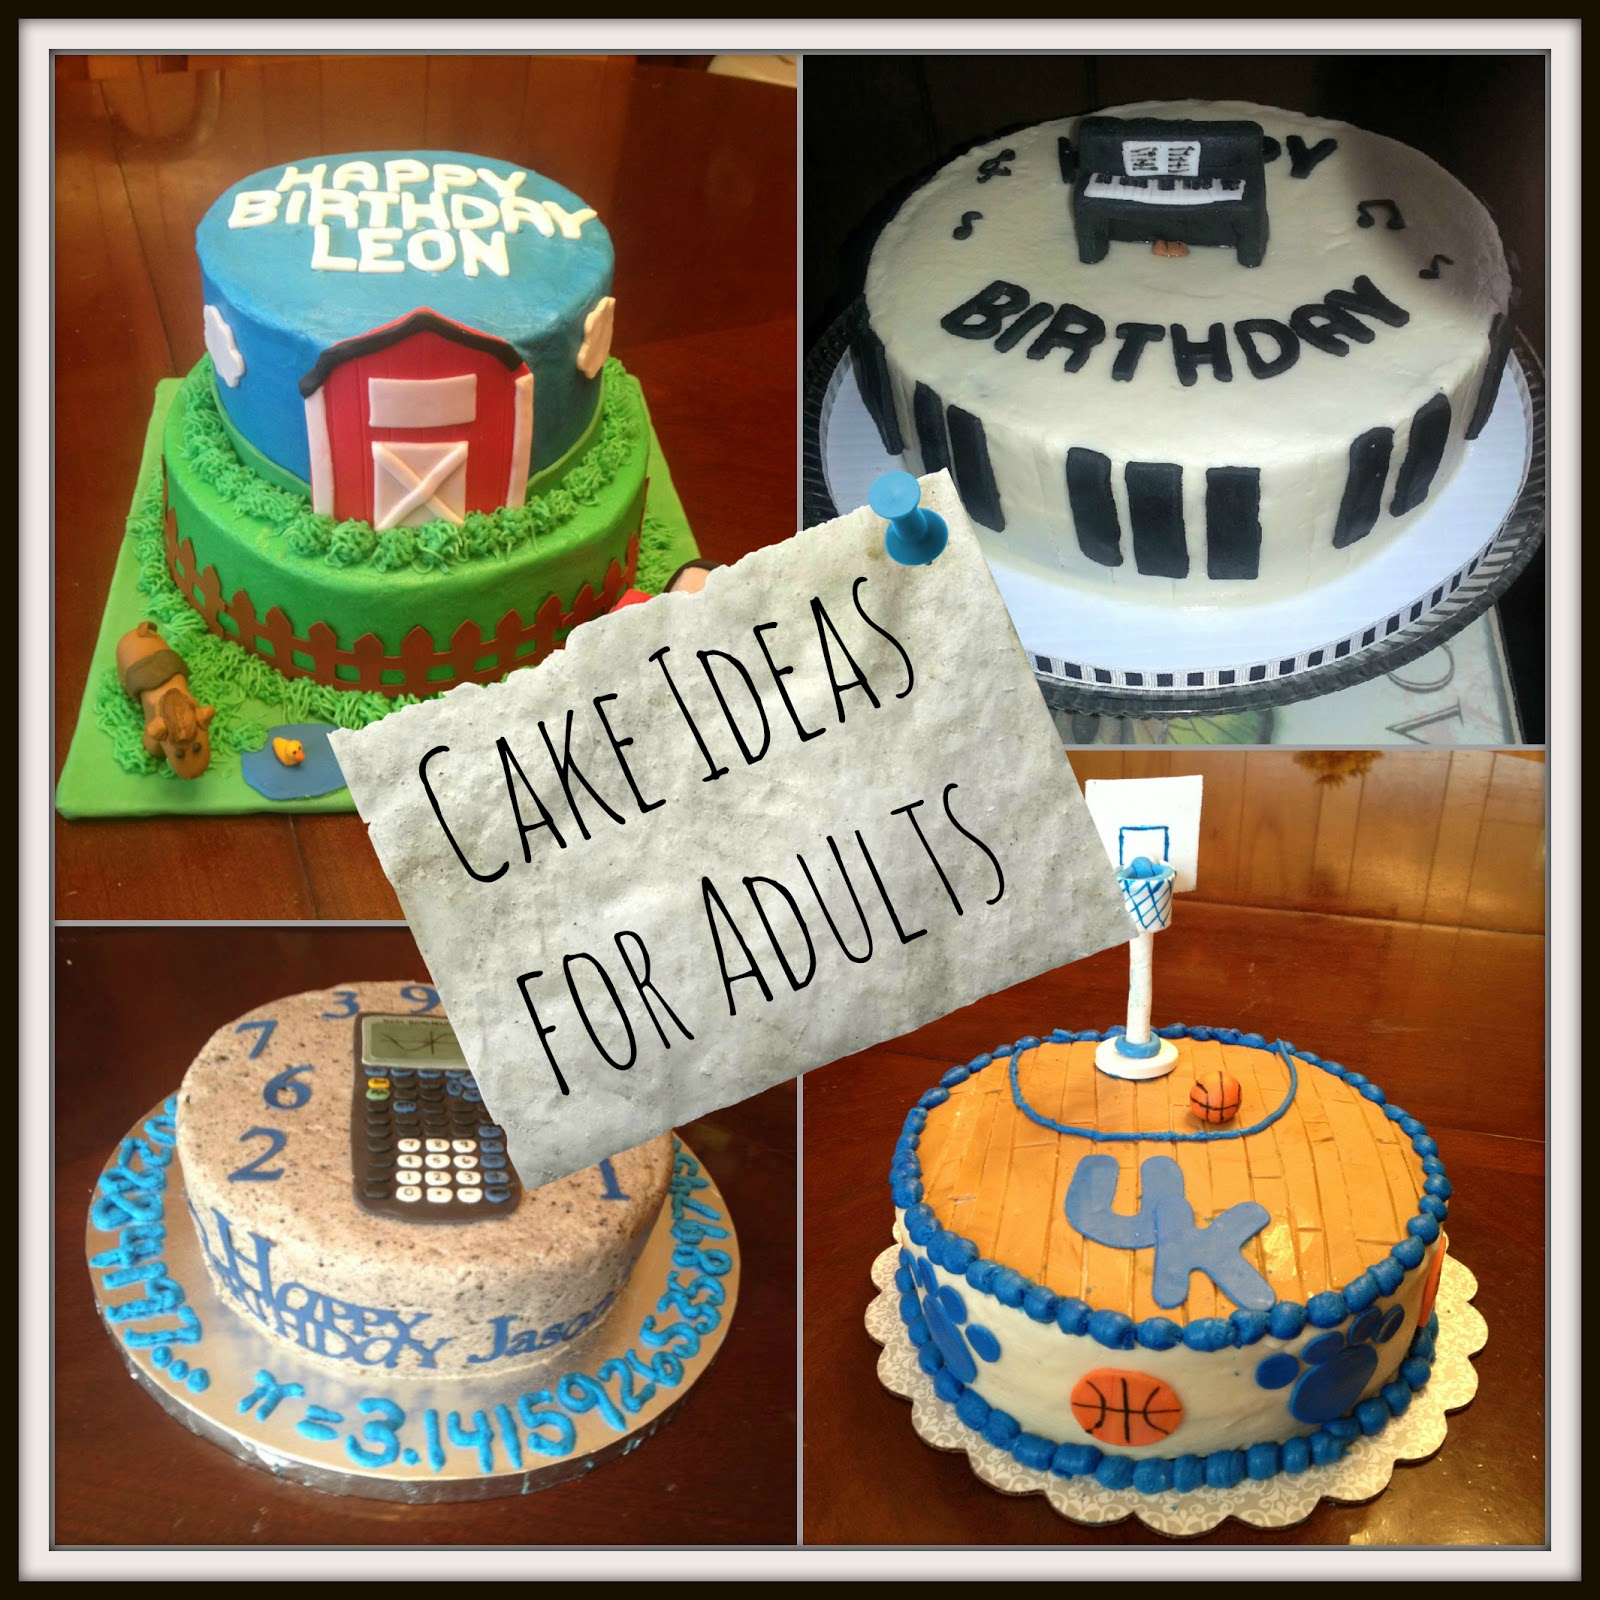 Cake Design Ideas For Adults : Birthday Cake Ideas for Adults